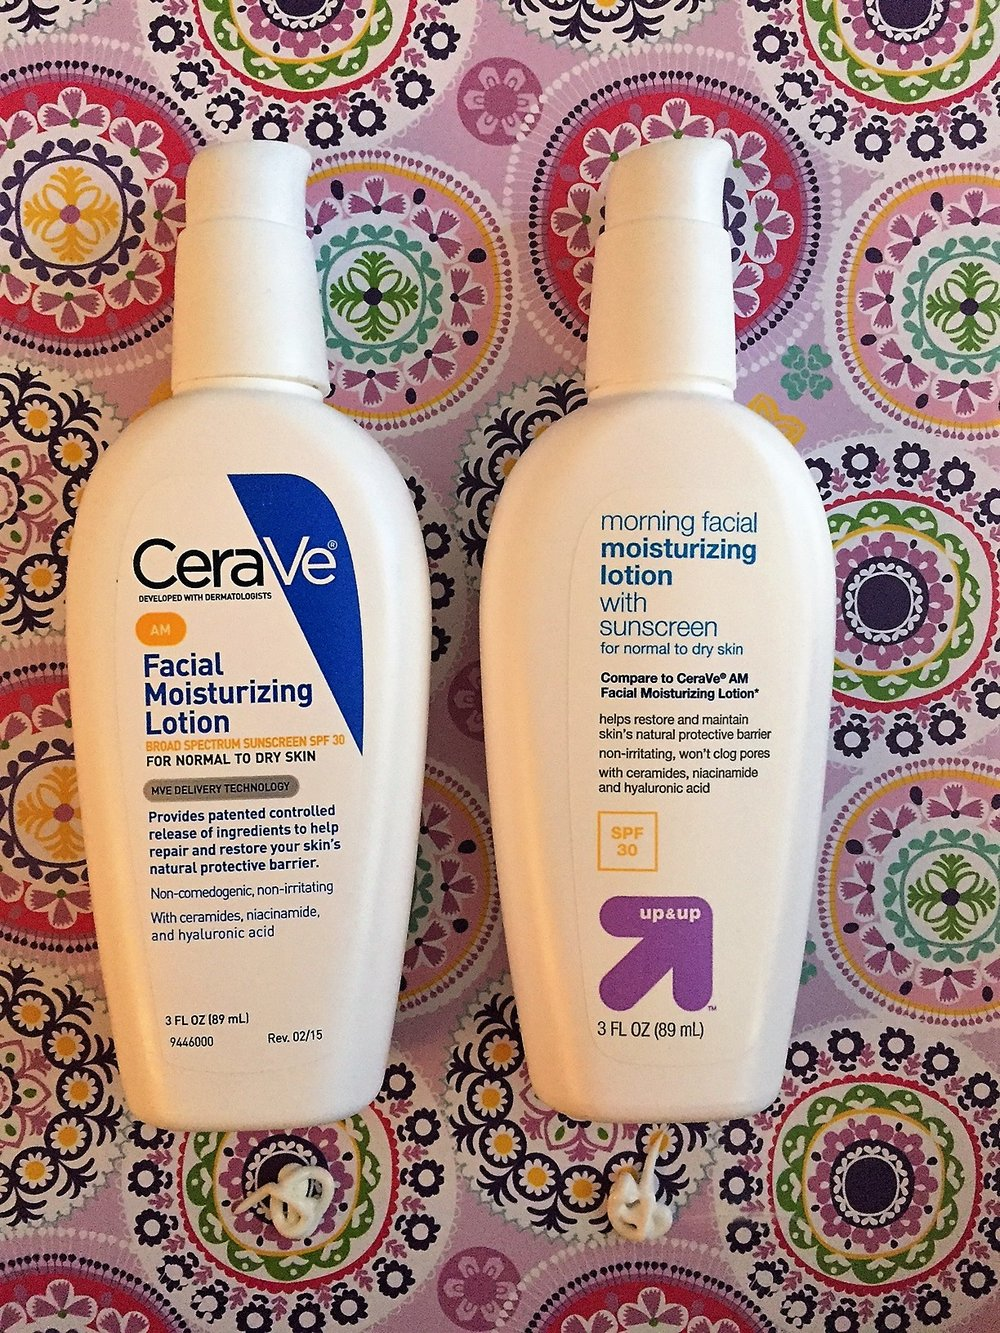 We recommend buying the store brand (up & up) version in this scenario - slight ingredient difference but we hypothesize it's a prior formulation of CeraVe. Note: the CVS & up & up store brand versions are the exact same as each other.